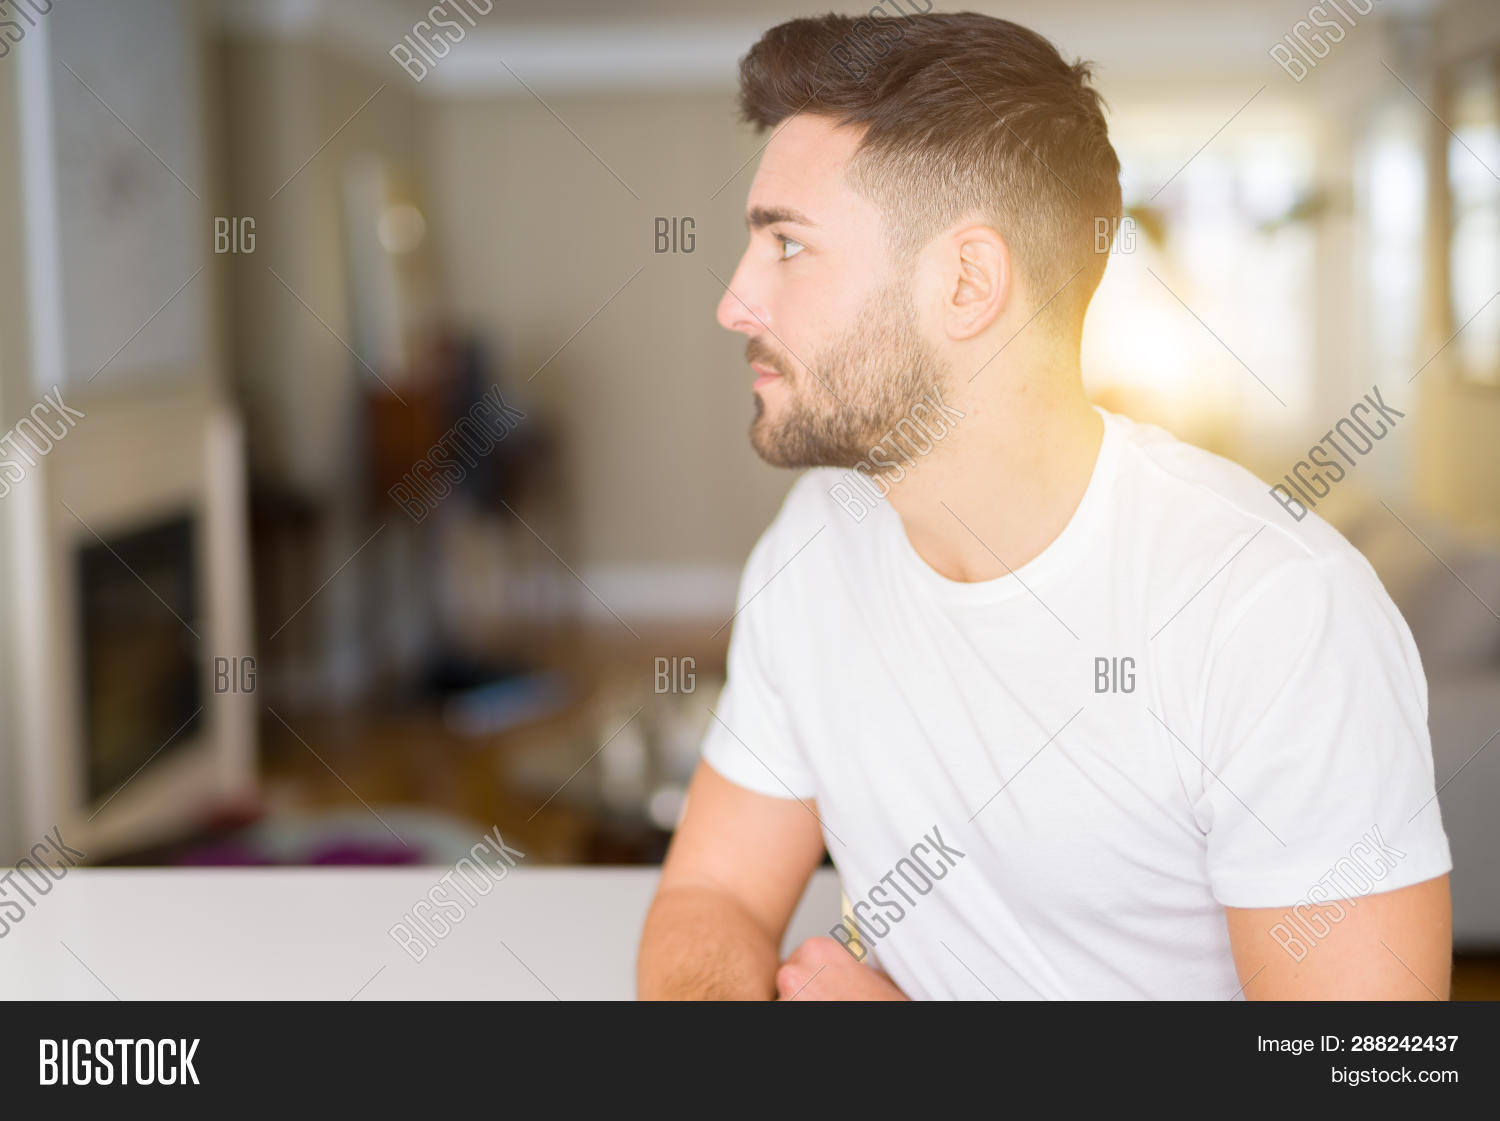 Young Handsome Man Image & Photo (Free Trial) | Bigstock